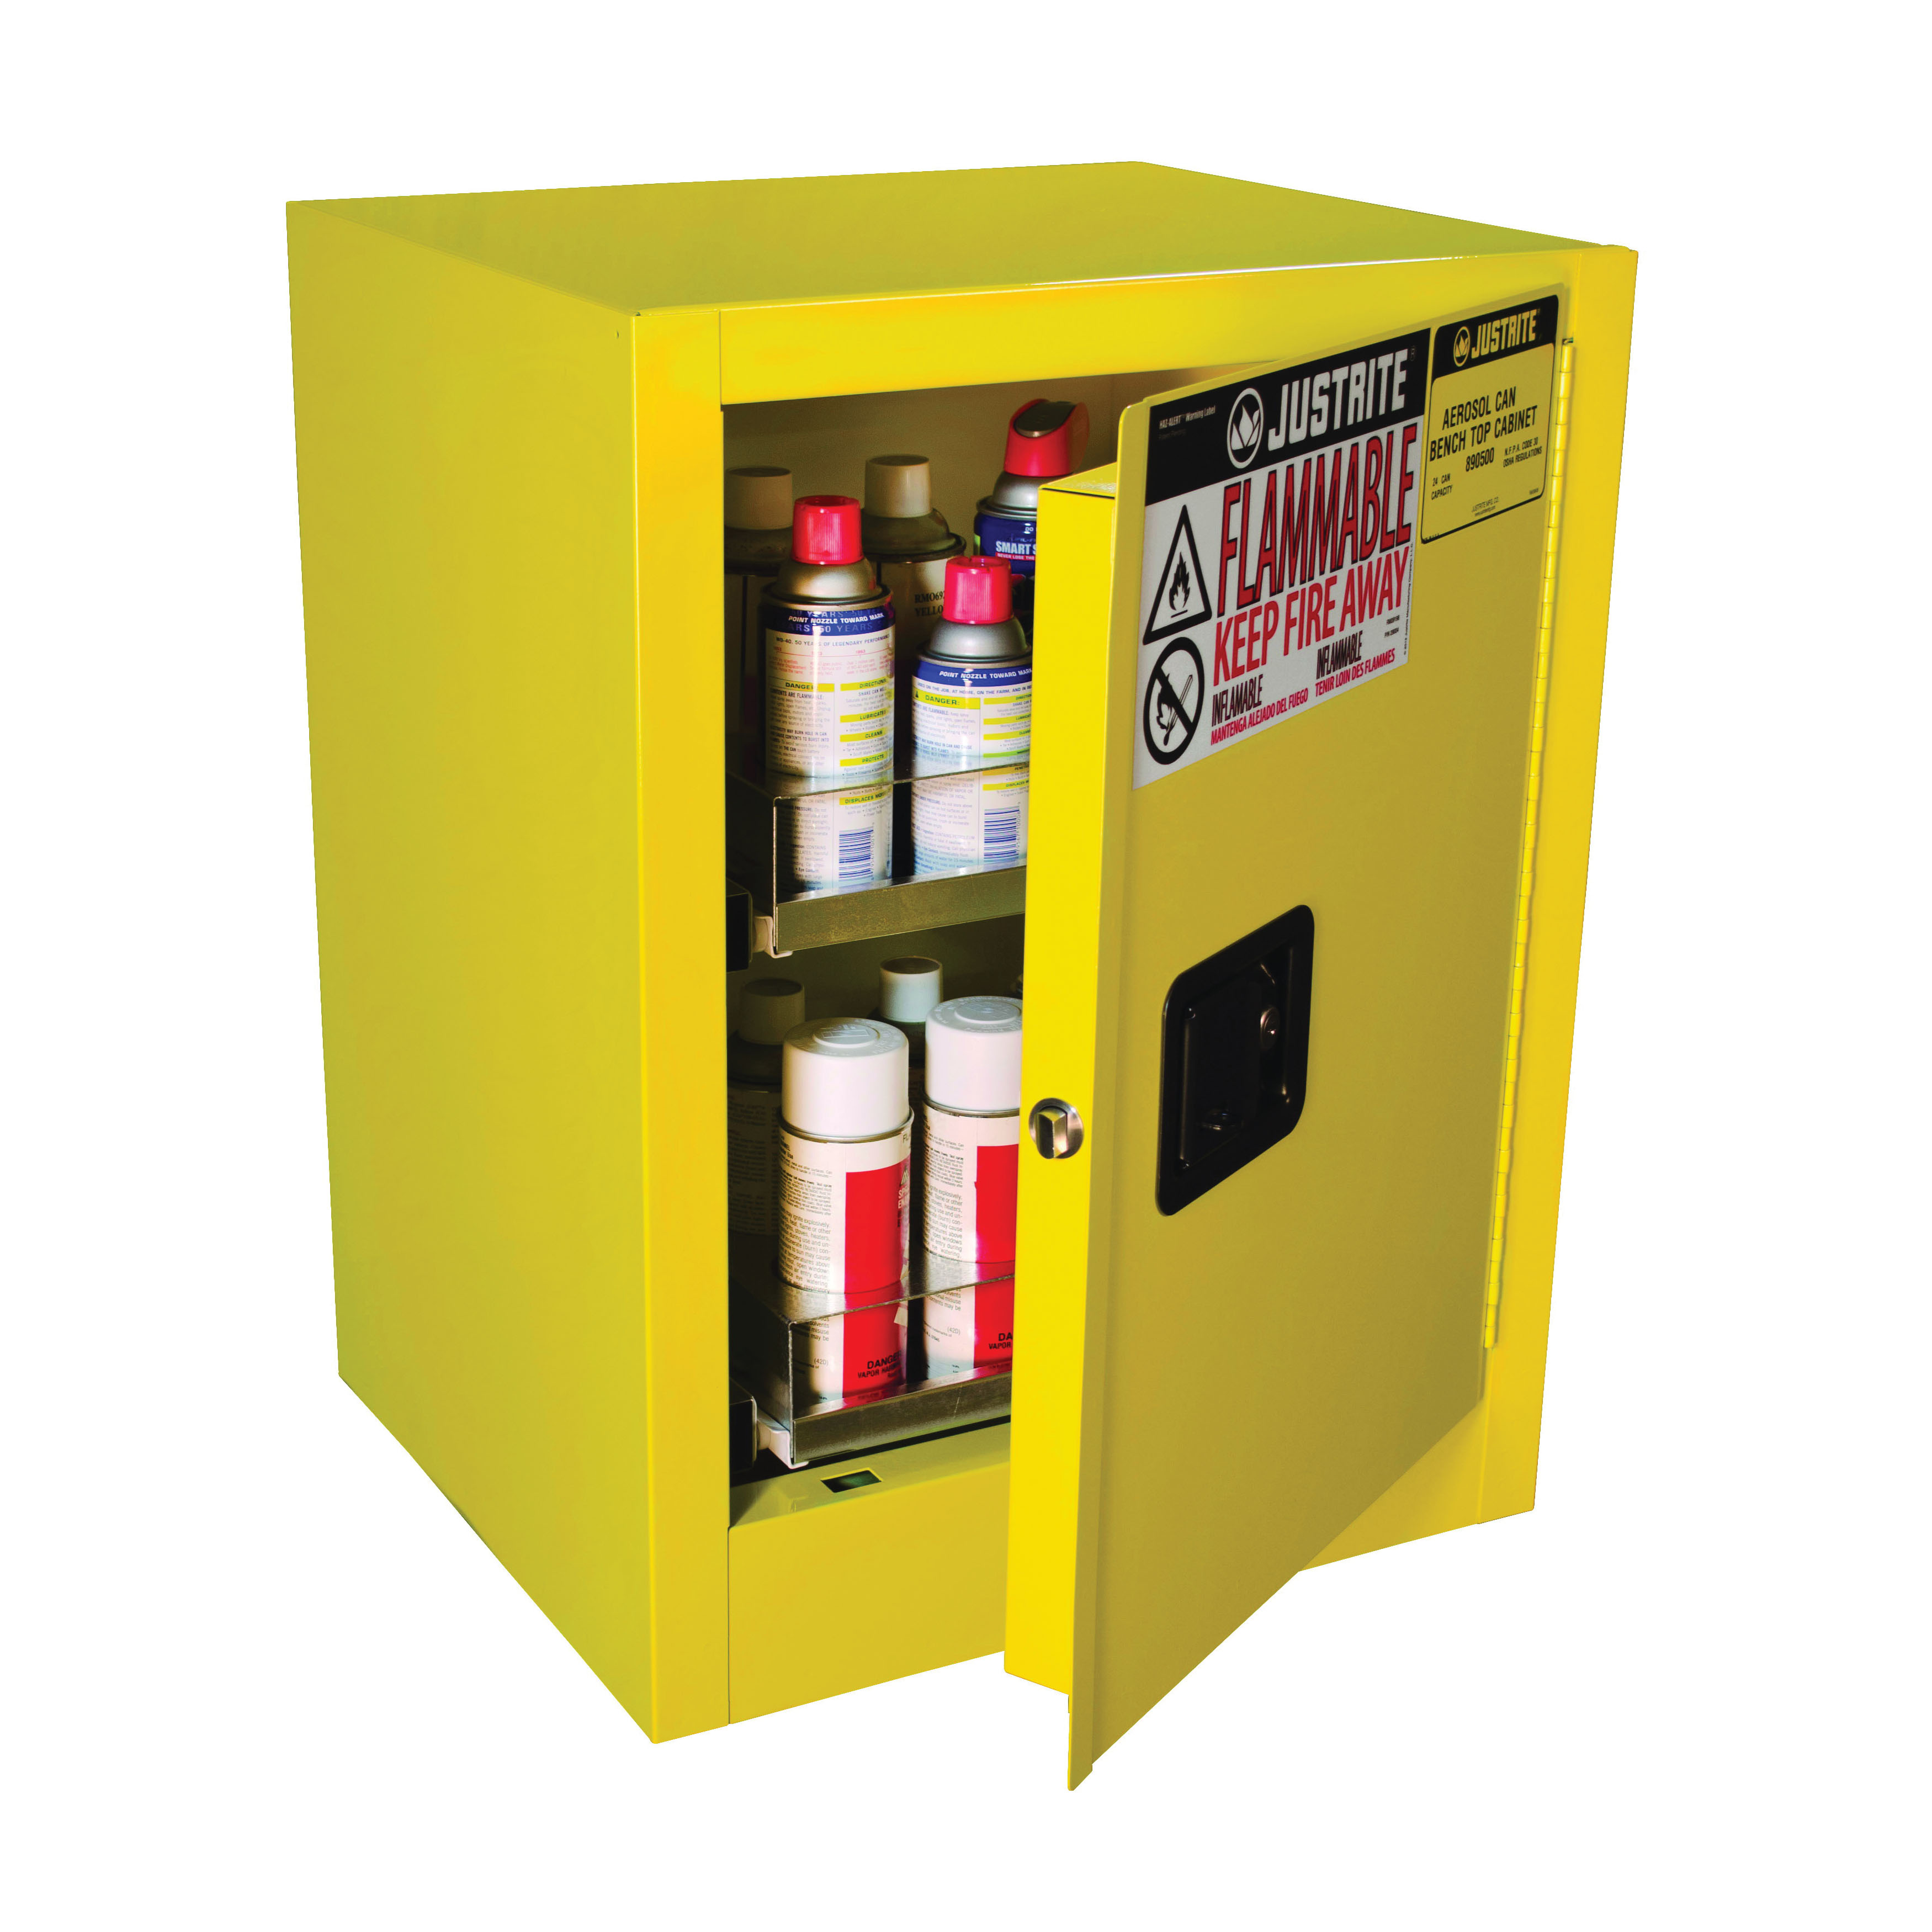 Justrite® 890500 Sure-Grip® EX Benchtop Flammable Safety Cabinet, 24 Aerosol Can Capacity, U-Loc™ Handle, 27 in H x 21 in W x 18 in D, Manual Close Door, 1 Doors, 1 Shelves, Cold Rolled Steel, Yellow